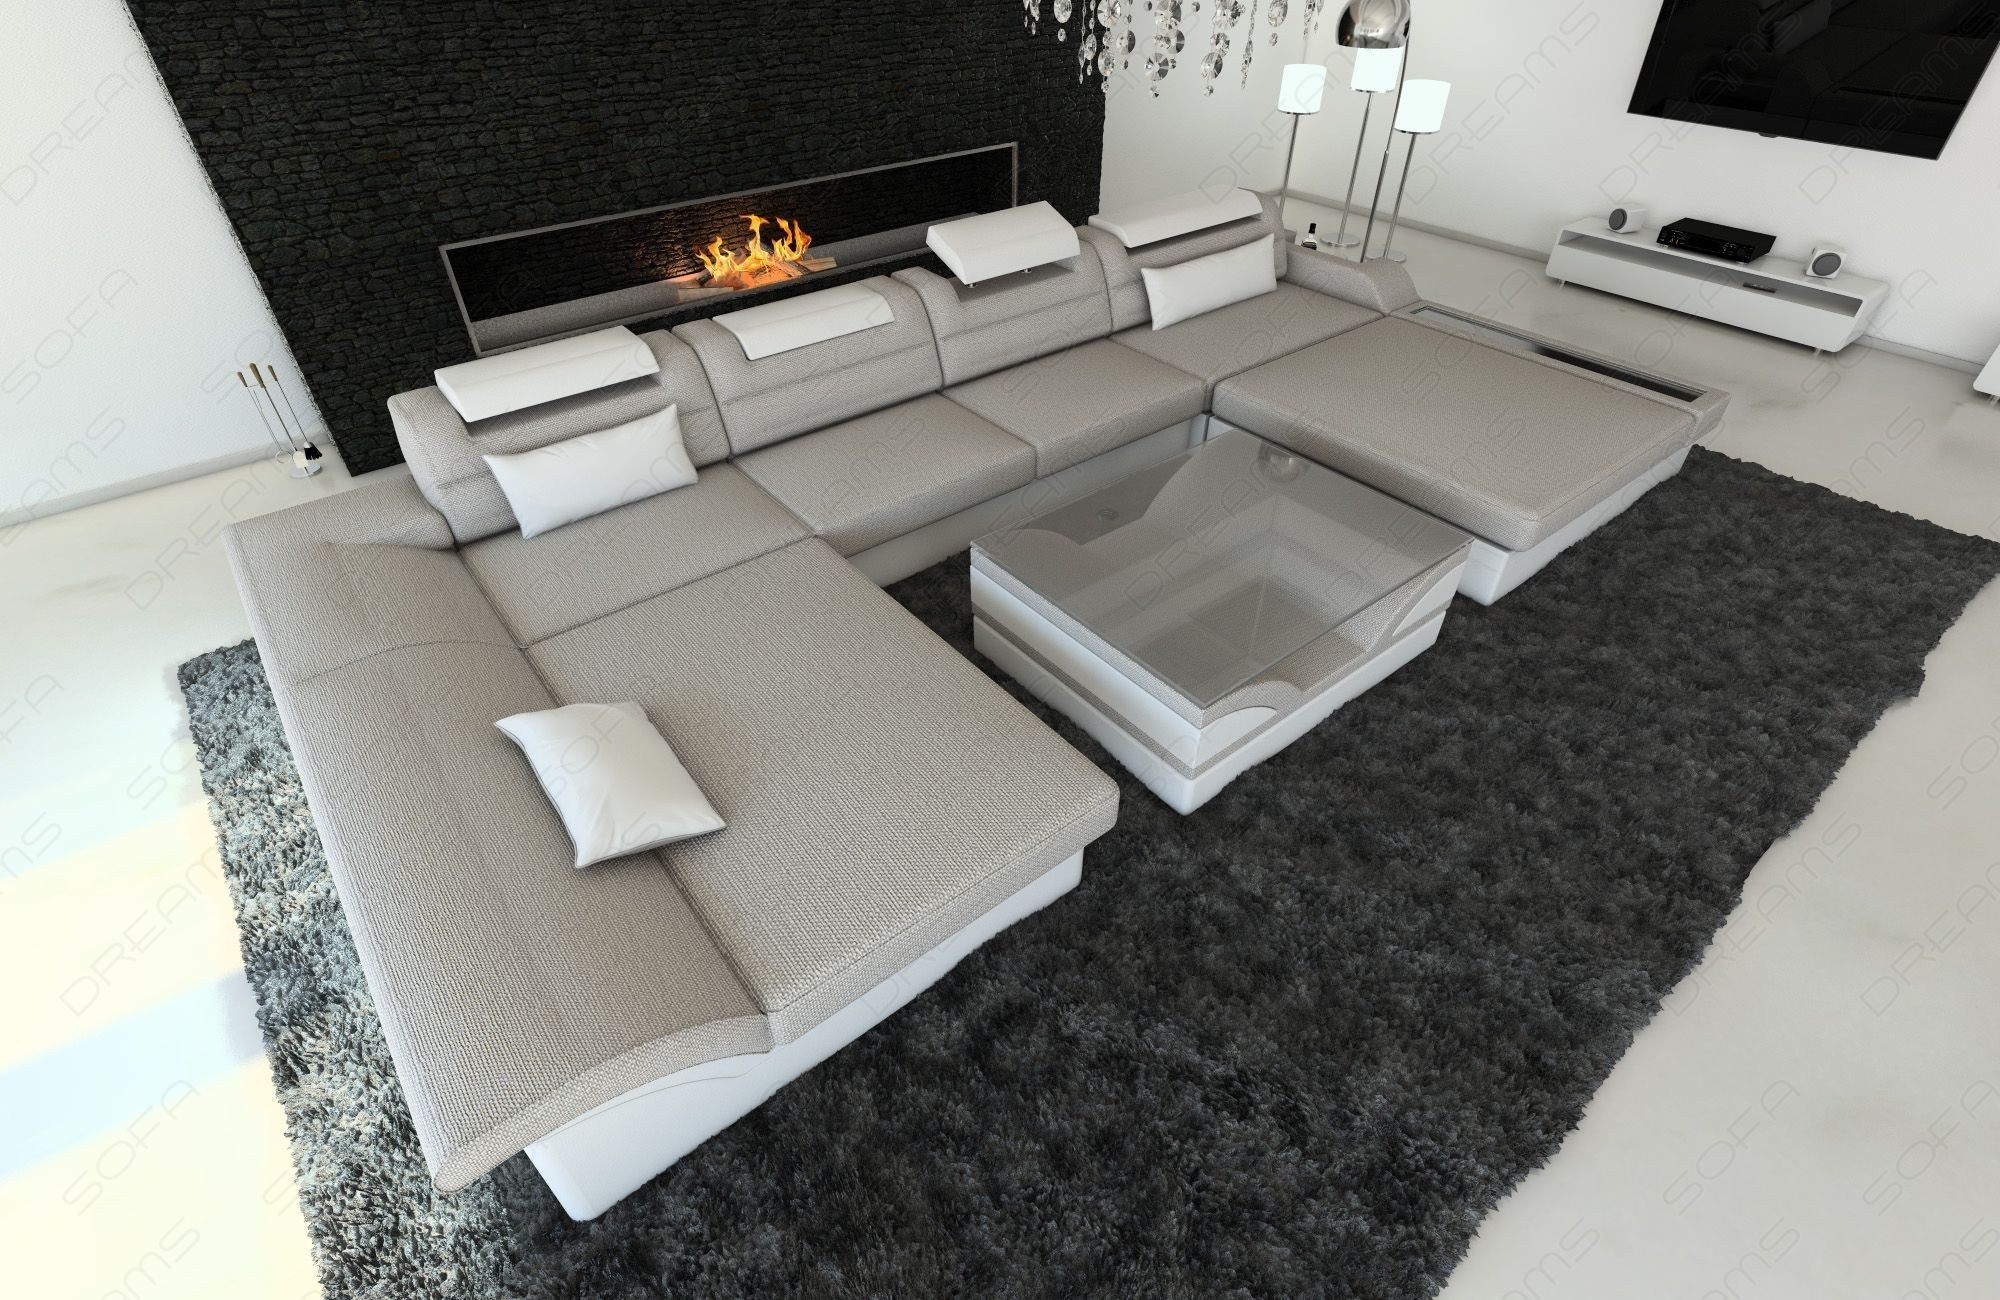 Design Sectional Sofa Chicago With Led Sand Hugo 2 Fabric Sectional Sofas Sectional Sofa Furniture